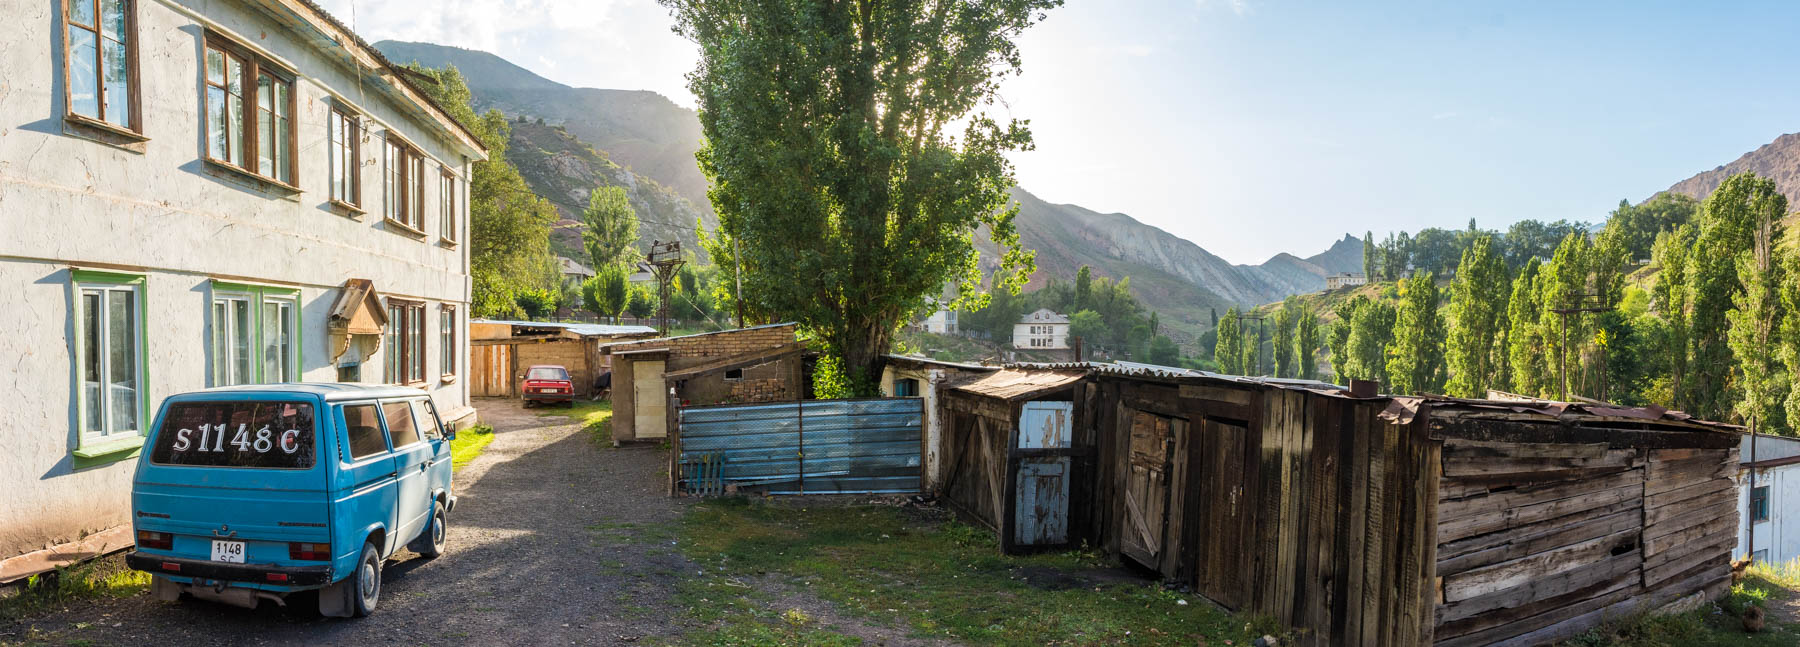 A panoramic view of Min Kush, Kyrgyzstan - Lost With Purpose